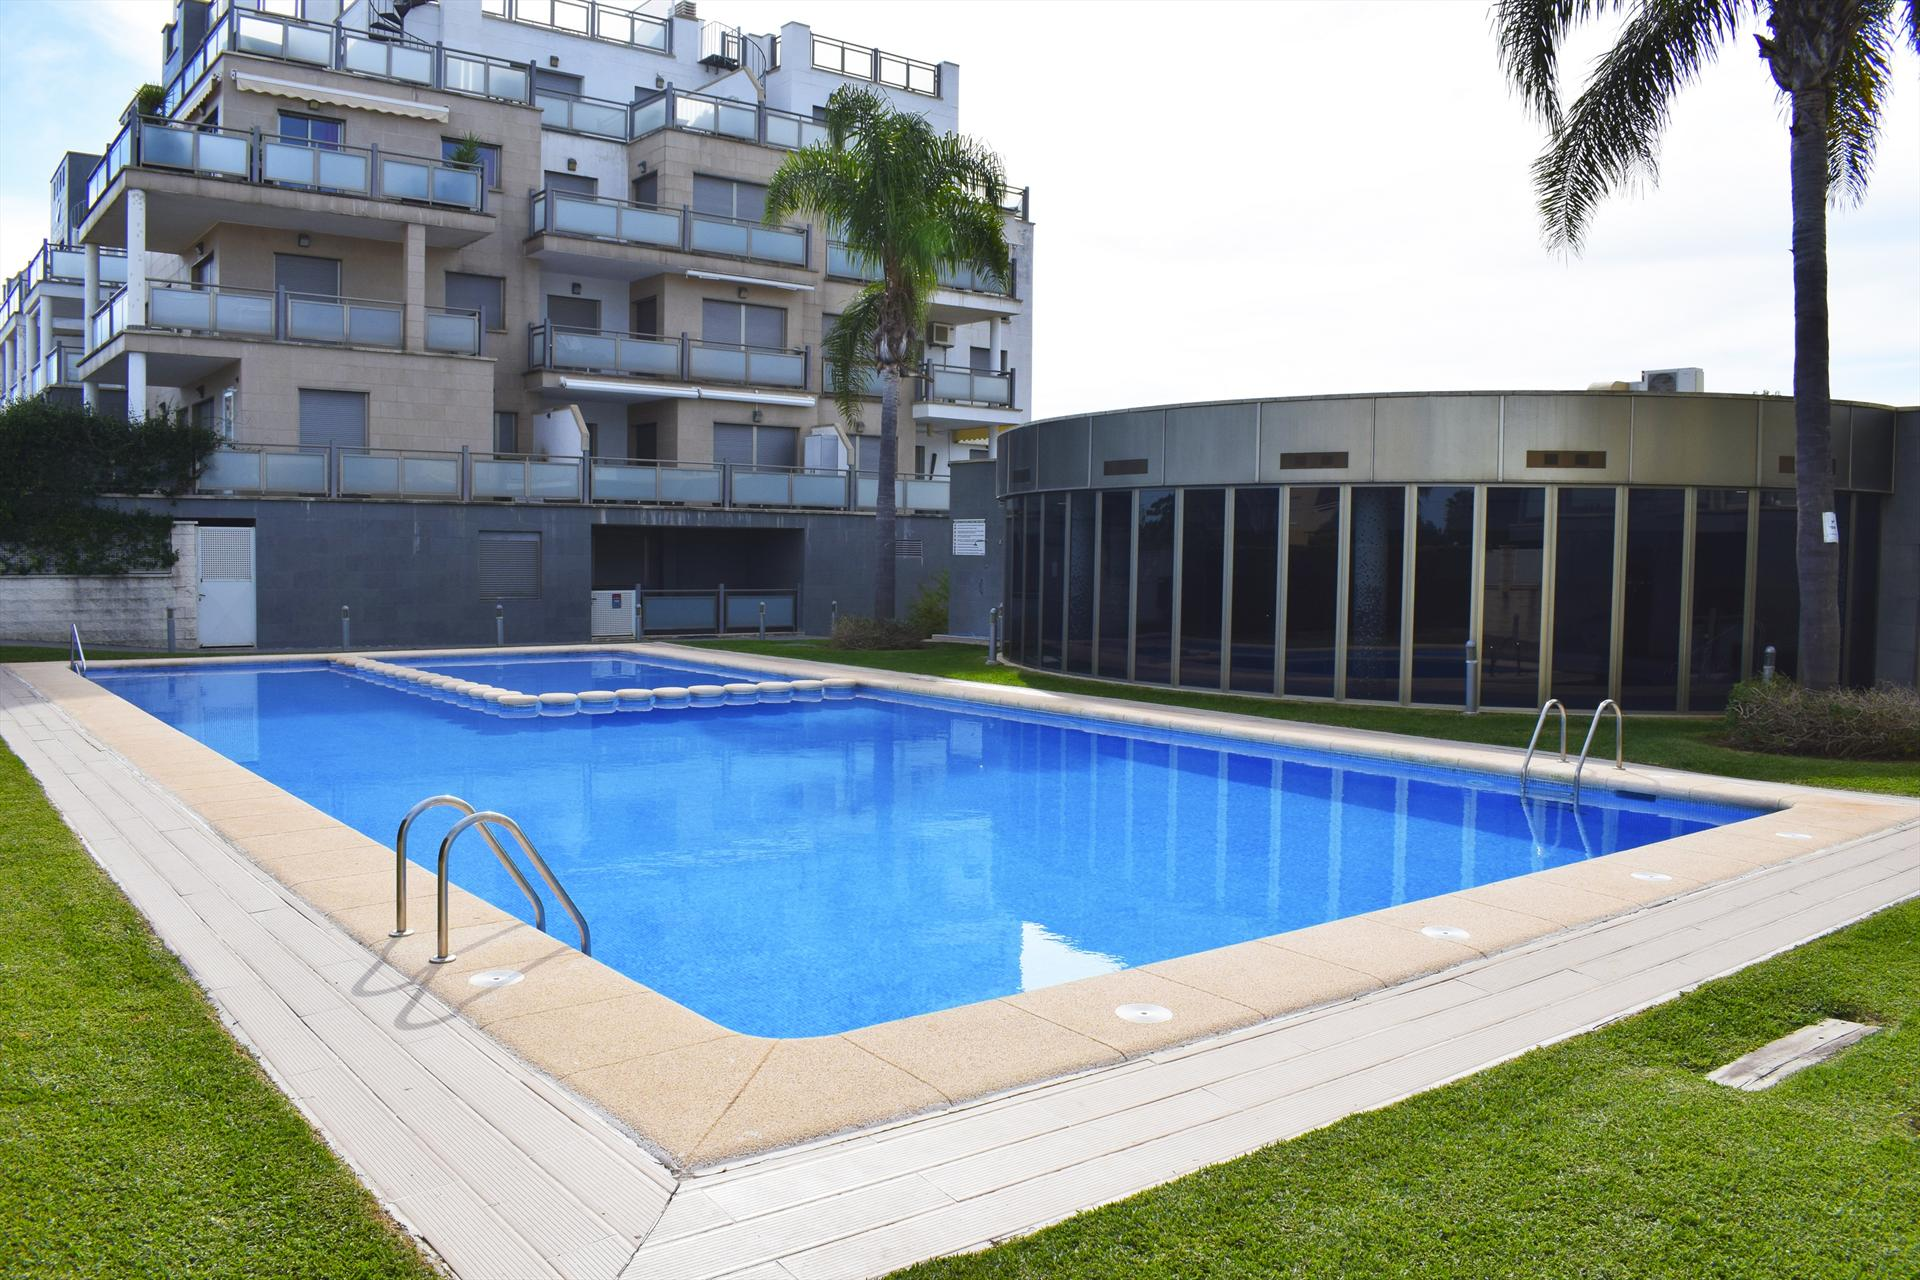 DUP814 Cabagua San Fernando, Large and luxury apartment in Oliva, on the Costa Blanca, Spain  with communal pool for 8 persons.....